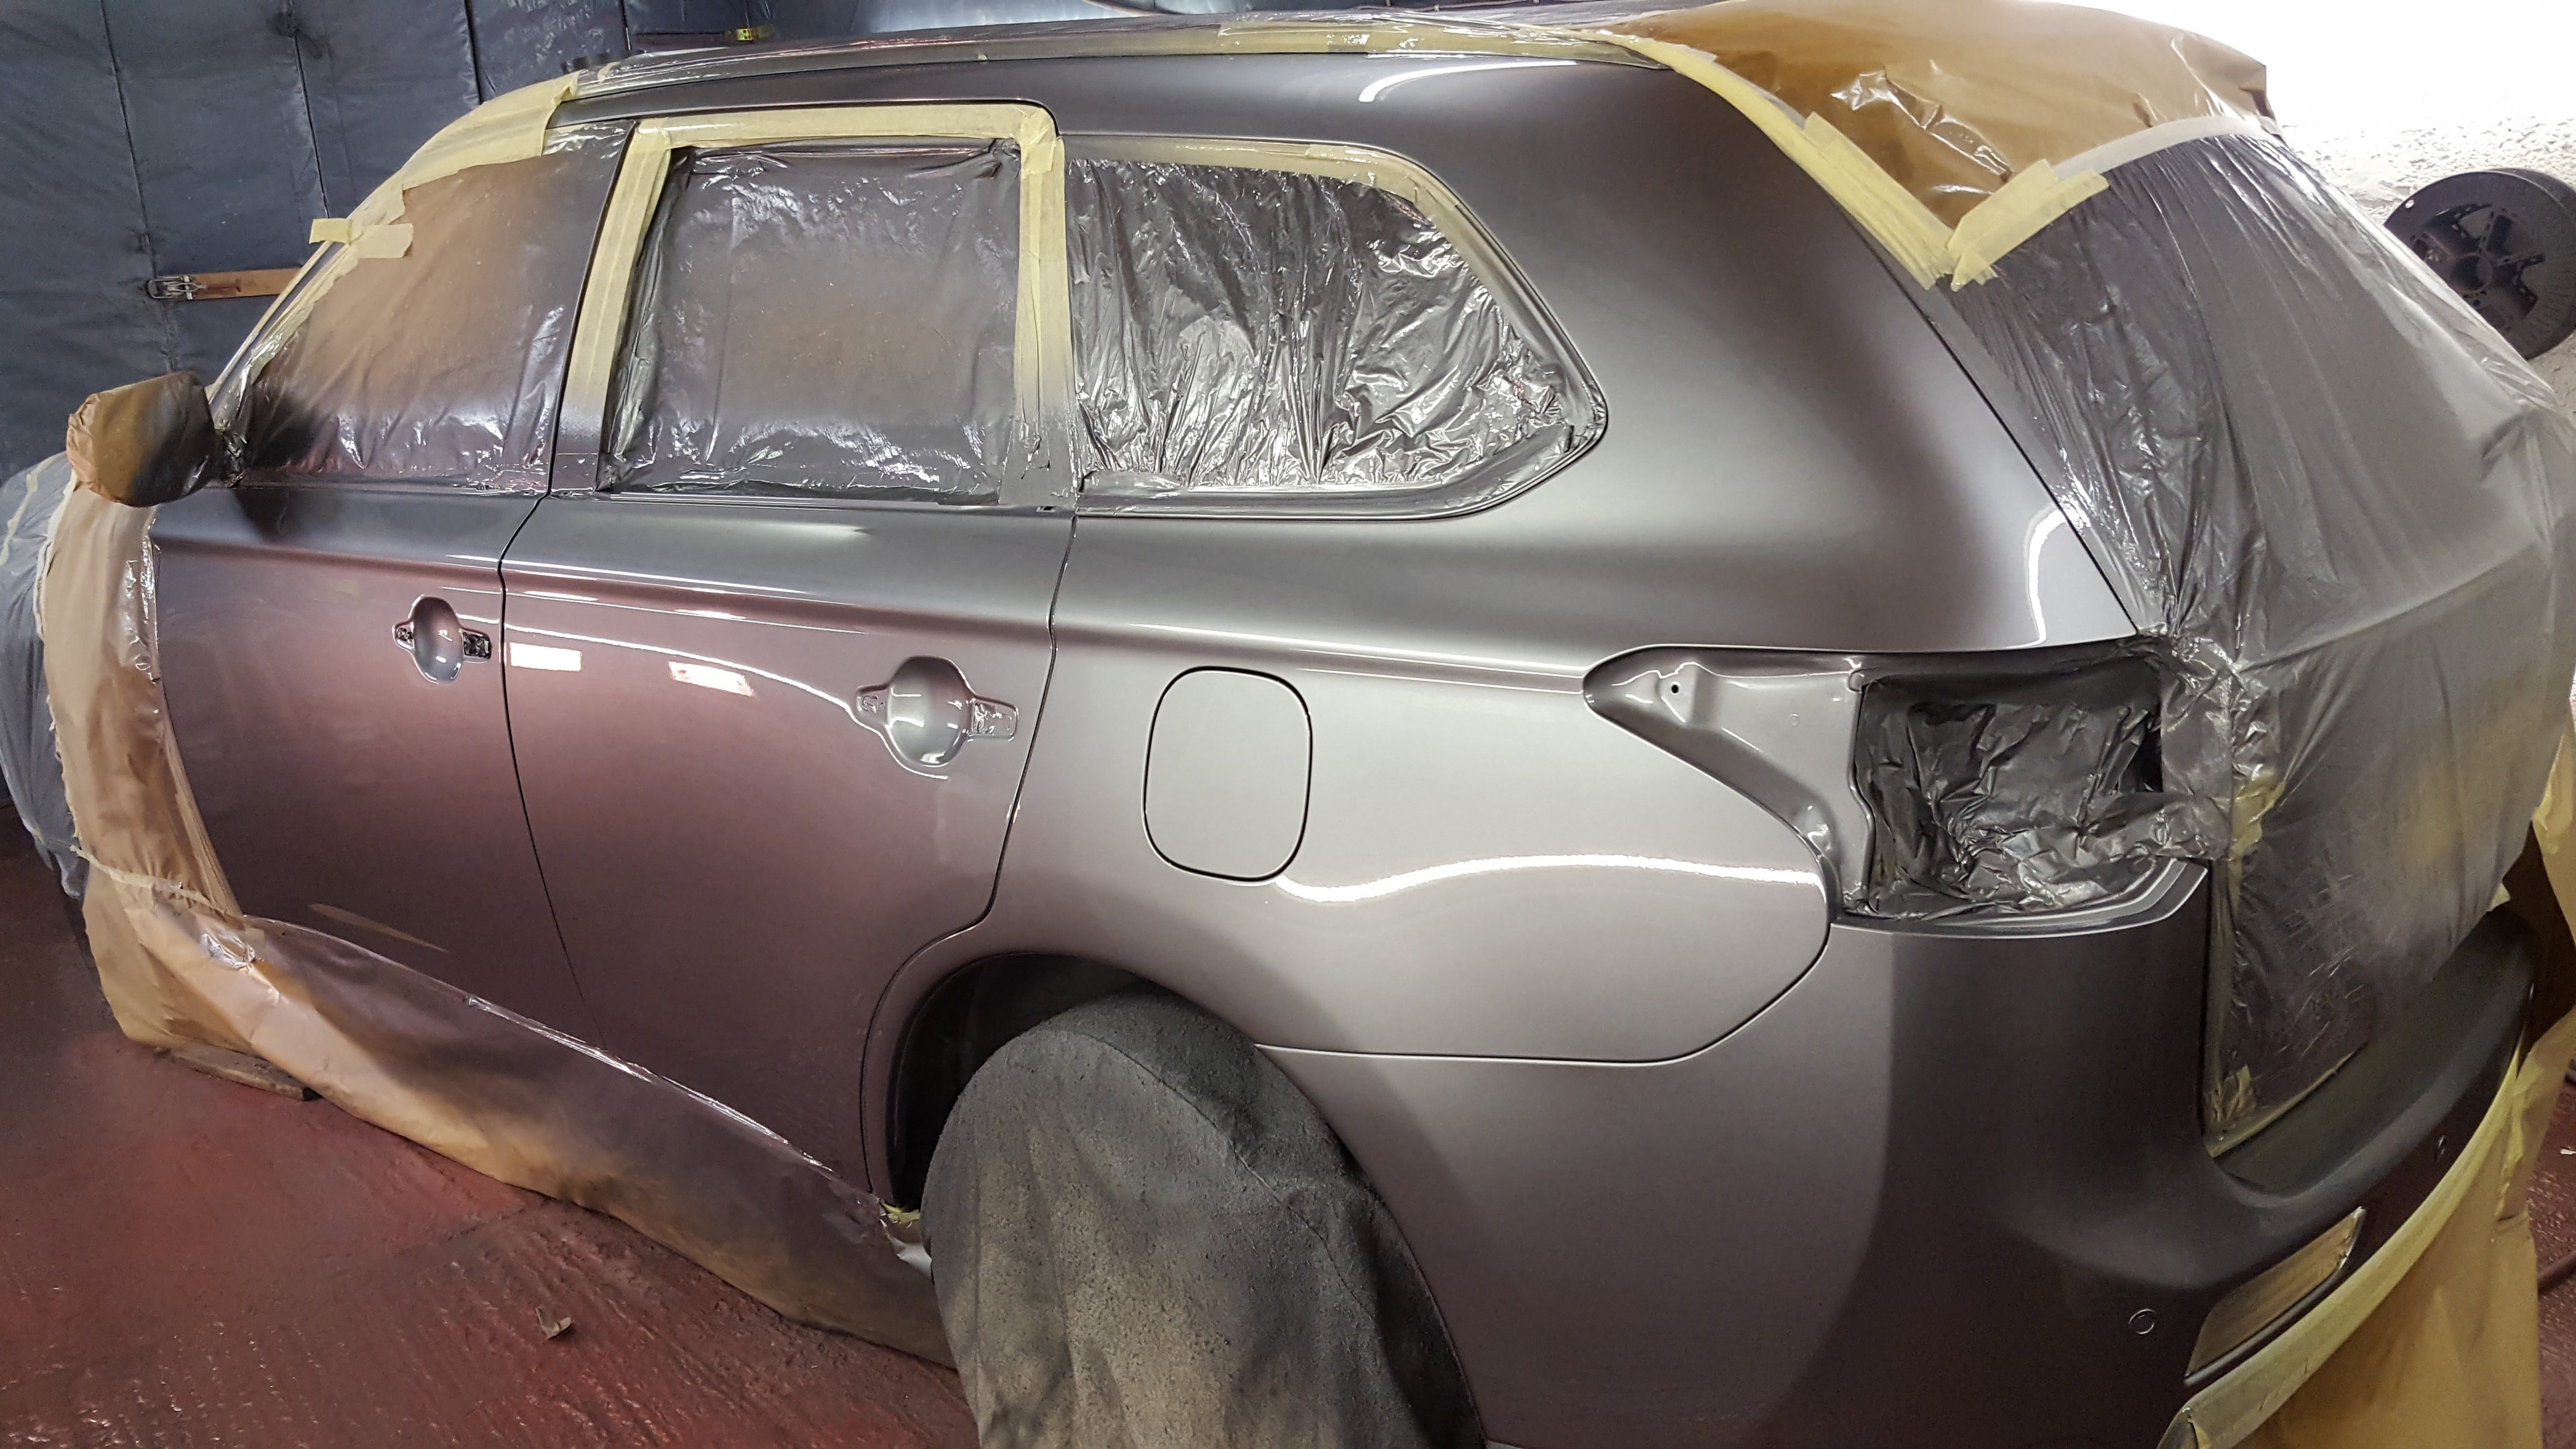 Vehicle painted in spraybooth